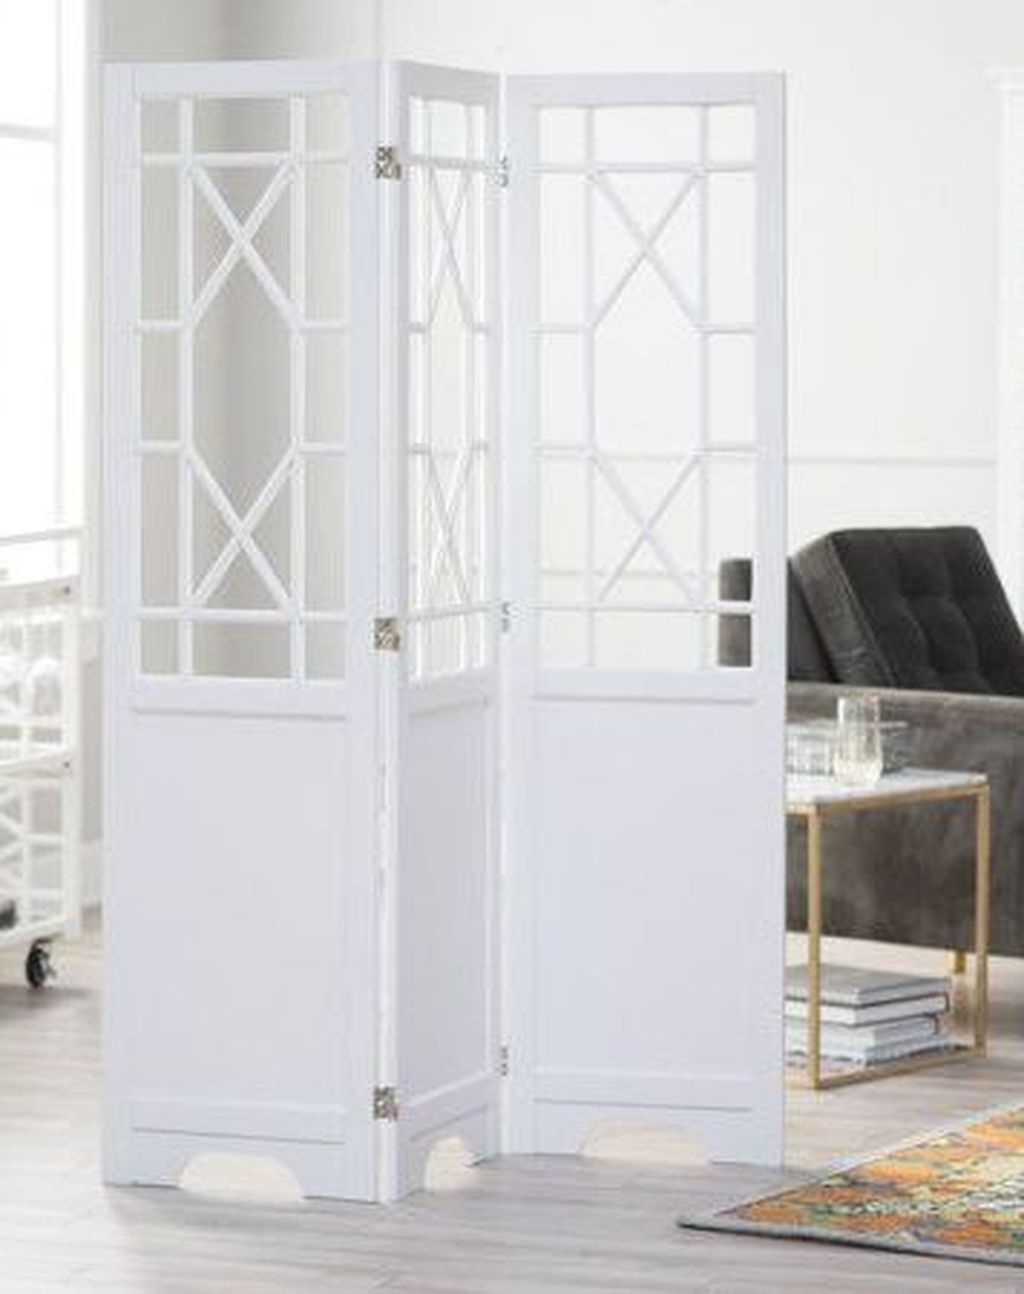 Unusual Tiny Room Dividers Design Ideas That Will Amaze You 21